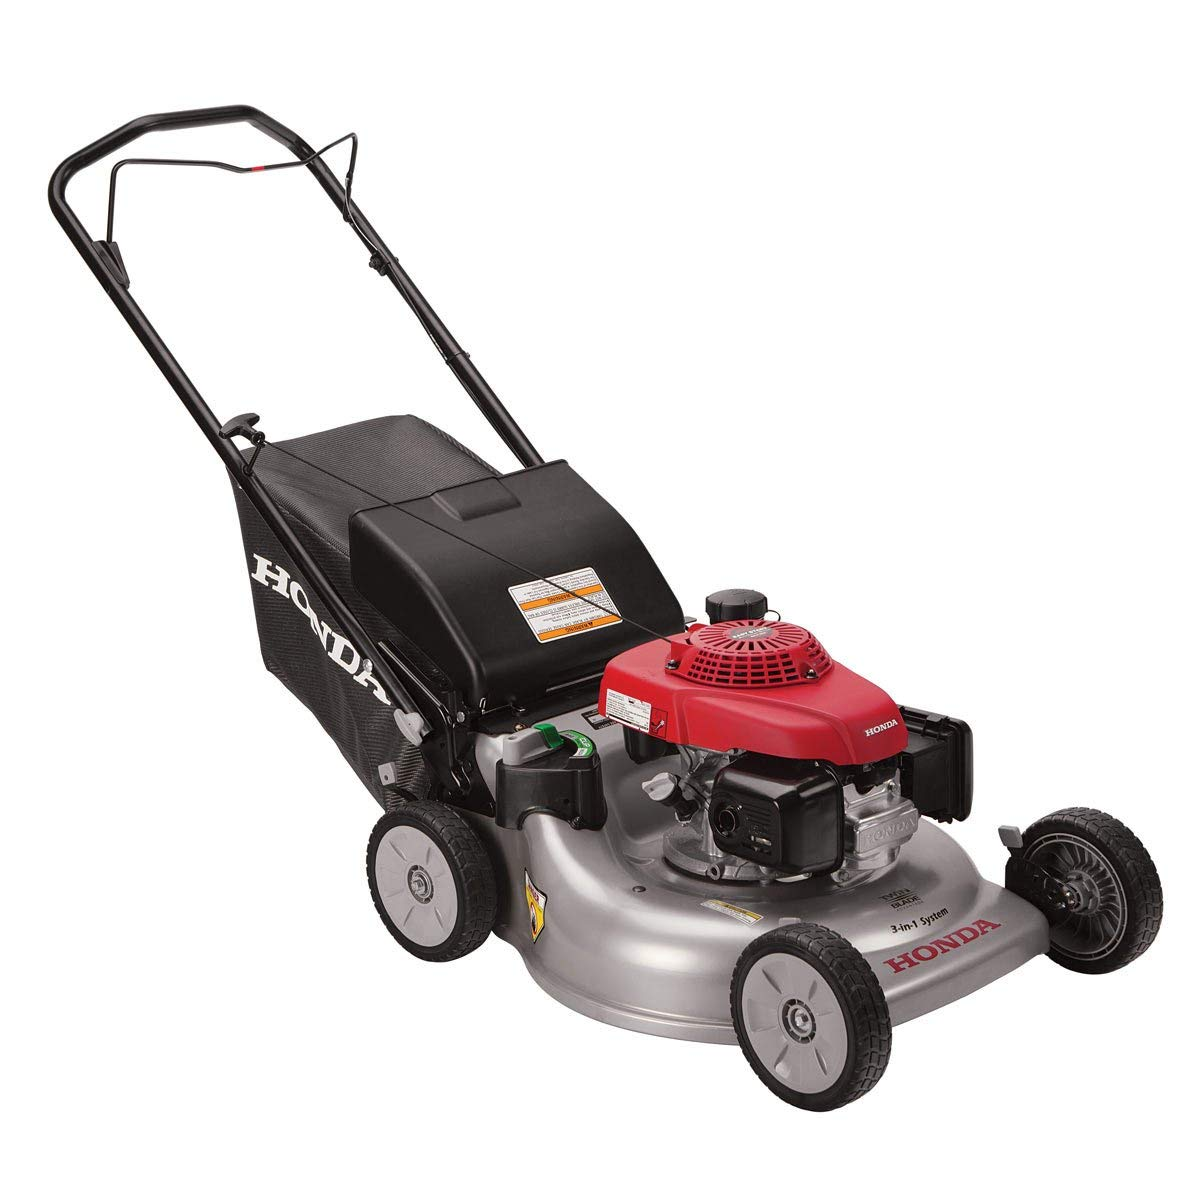 5 Best Gas Lawn-Mowers Reviews